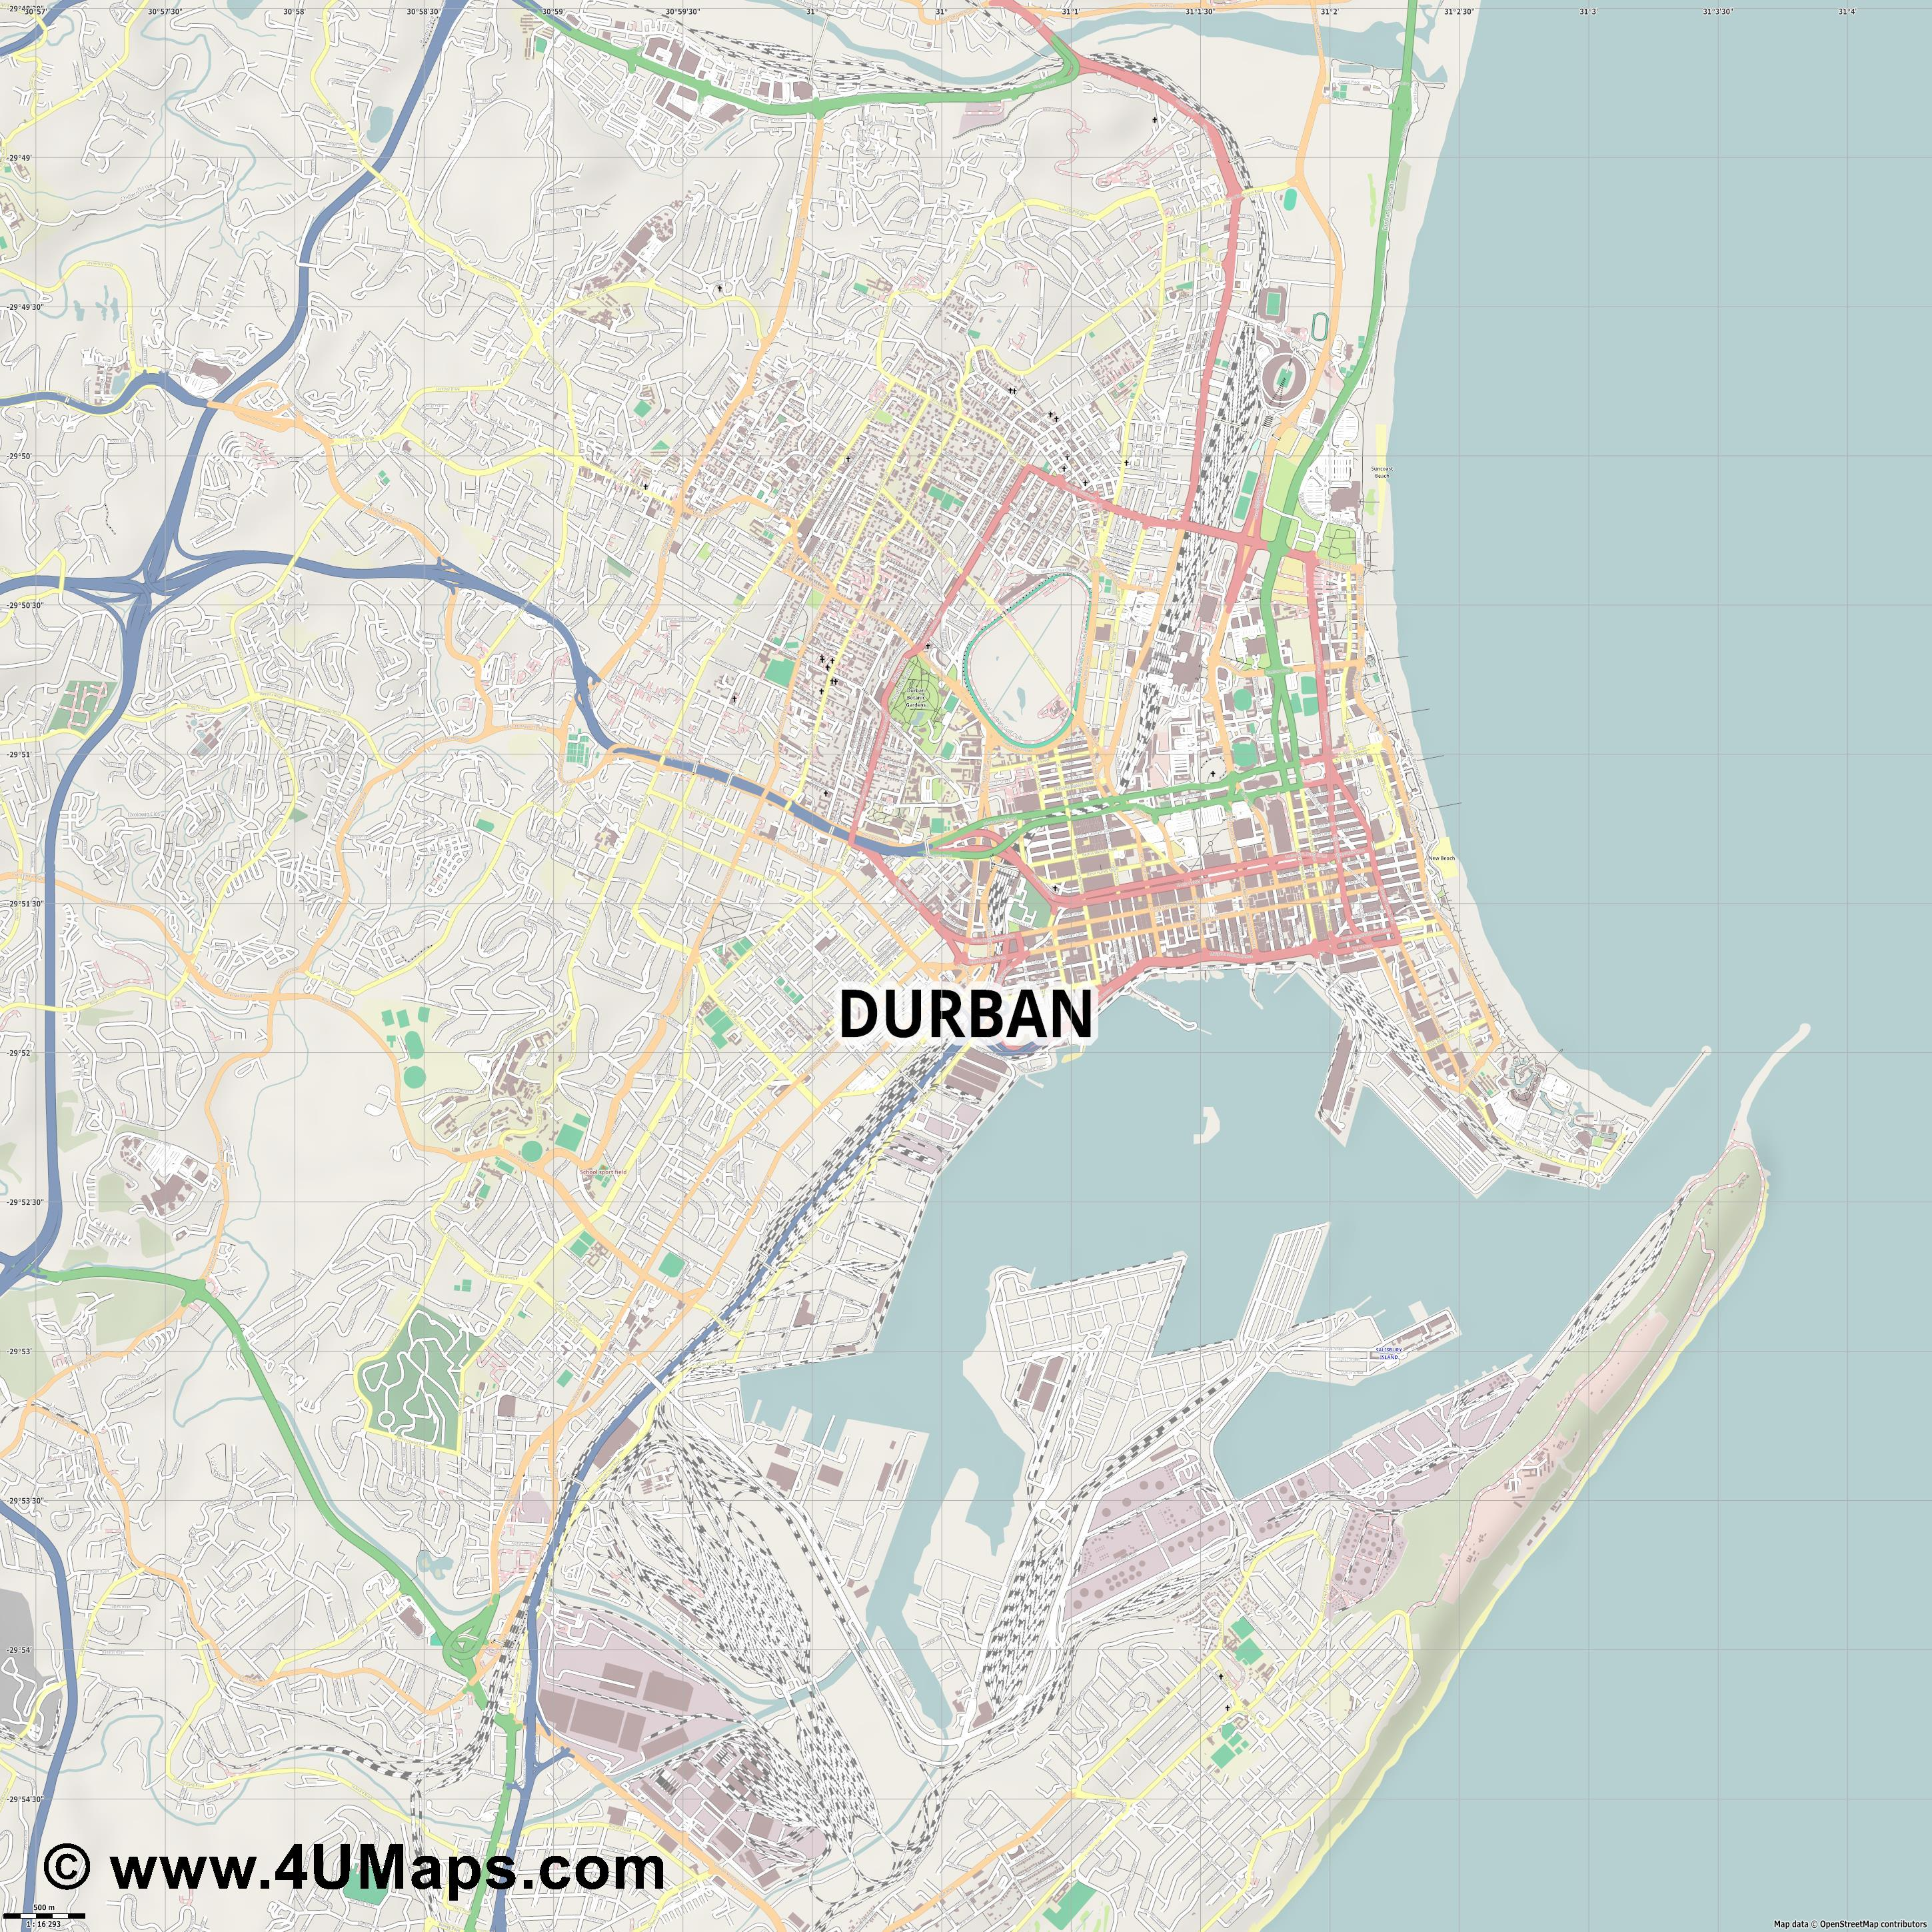 Durban  jpg ultra high detail preview vector city map